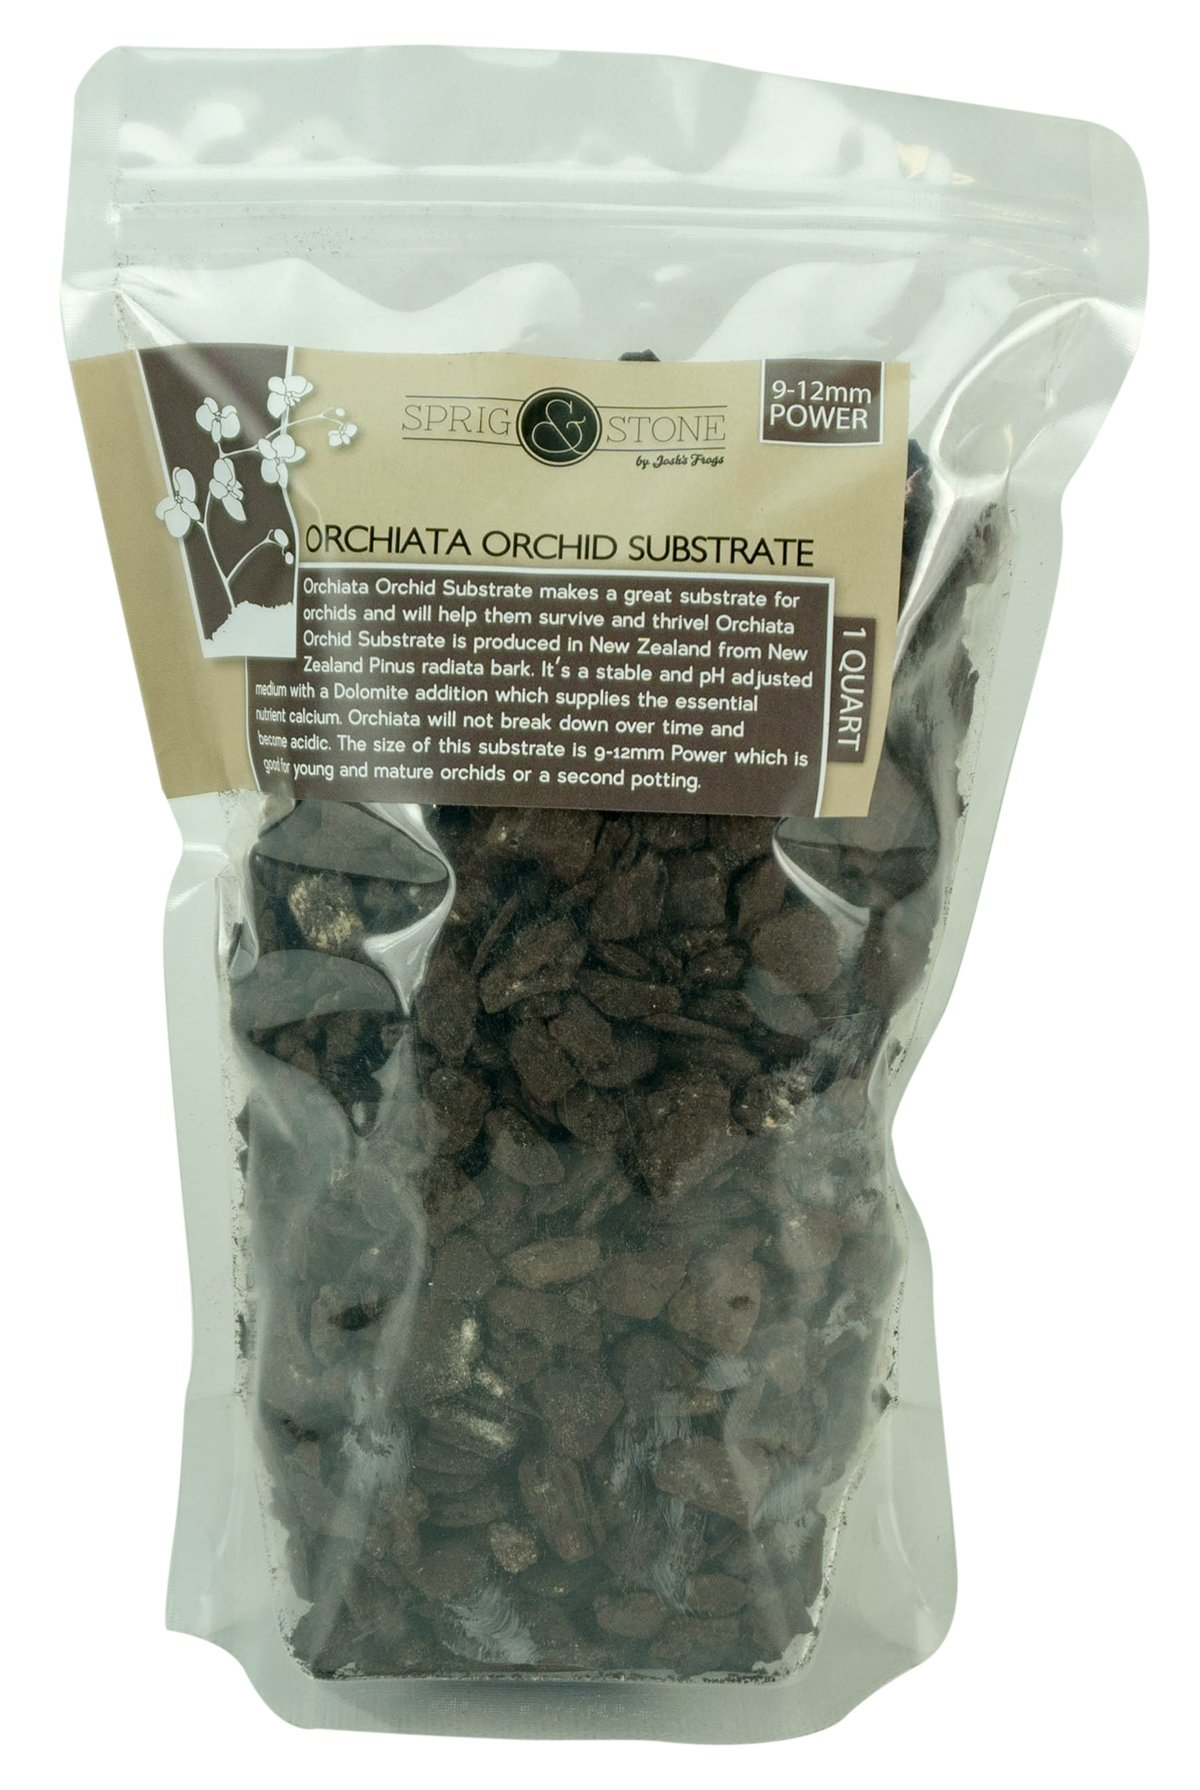 Orchiata Orchid Substrate - 9-12mm POWER (1 Quart)